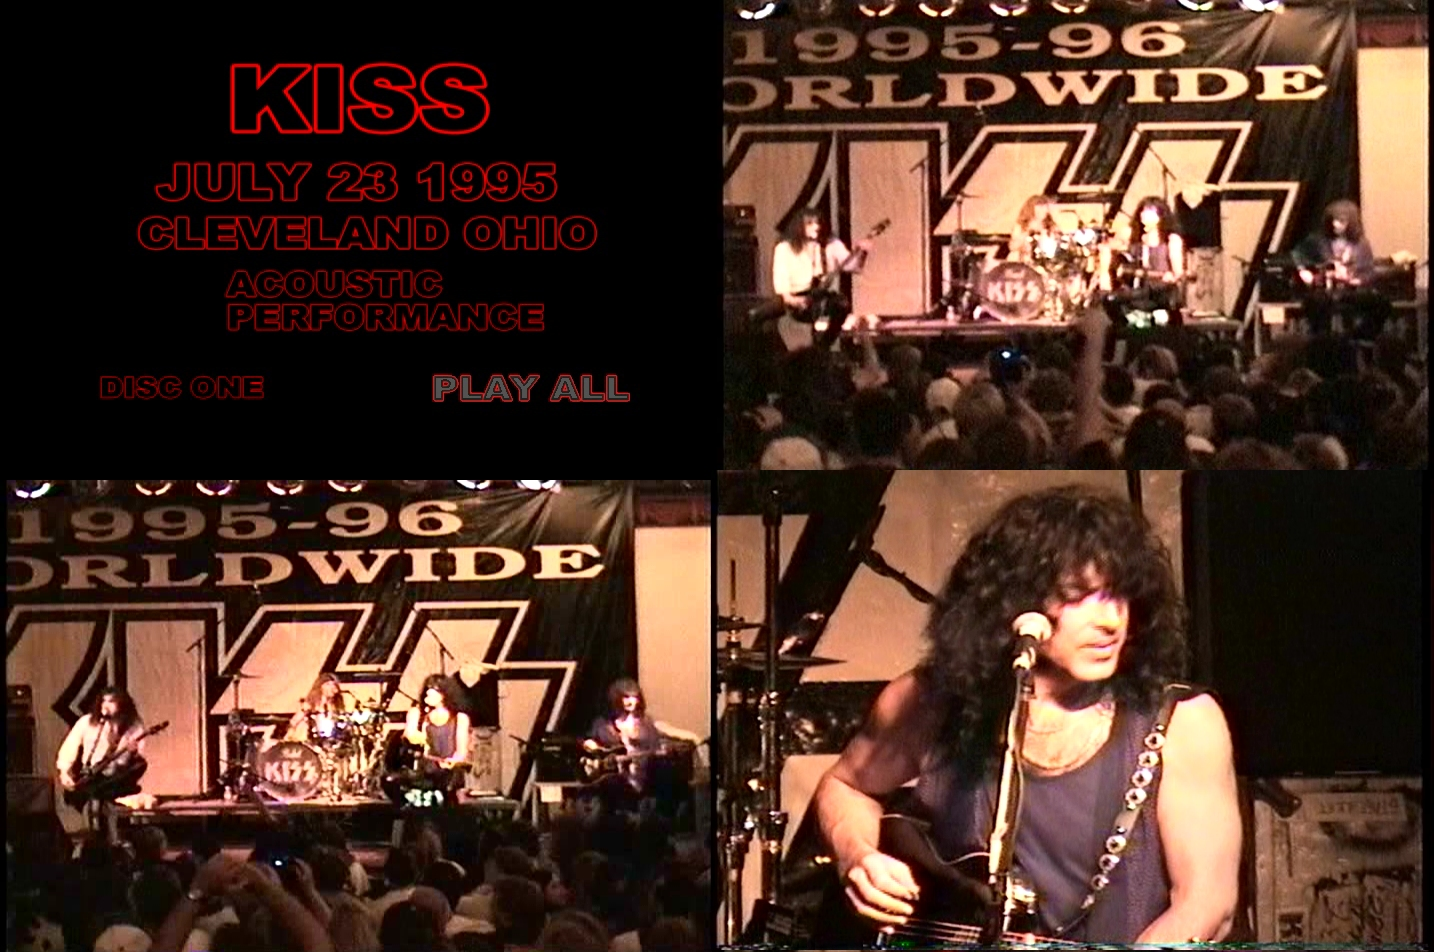 KISS Cleveland Ohio 1995 07 23 DVD 2 preview 0